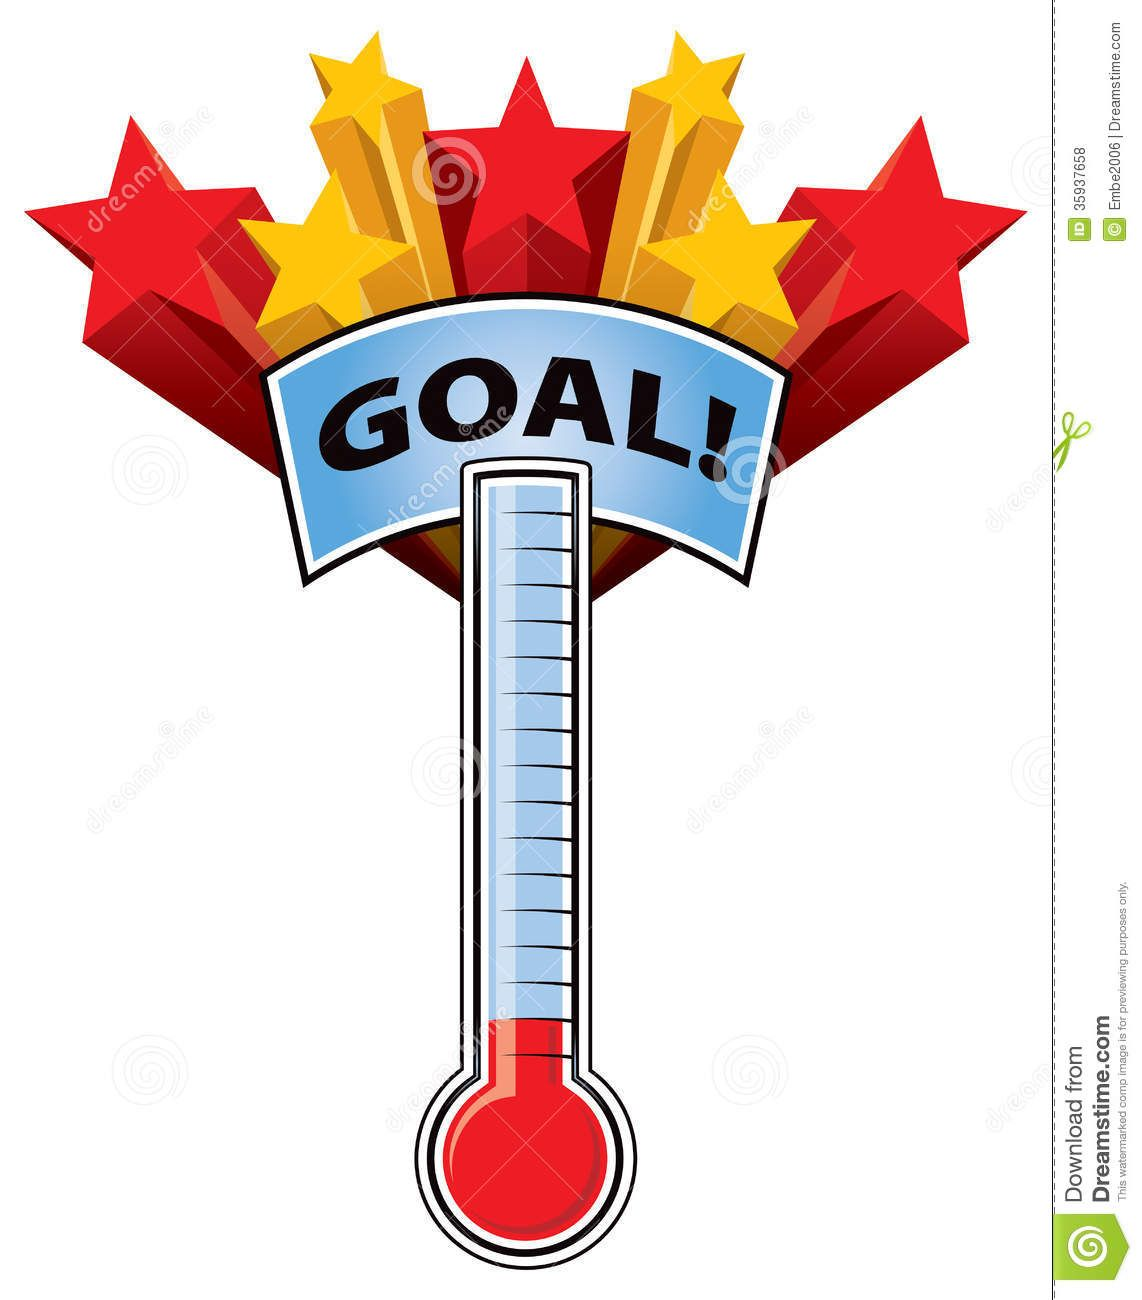 fundraising goal thermometers hospi noiseworks co rh hospi noiseworks co  blank fundraising thermometer clip art